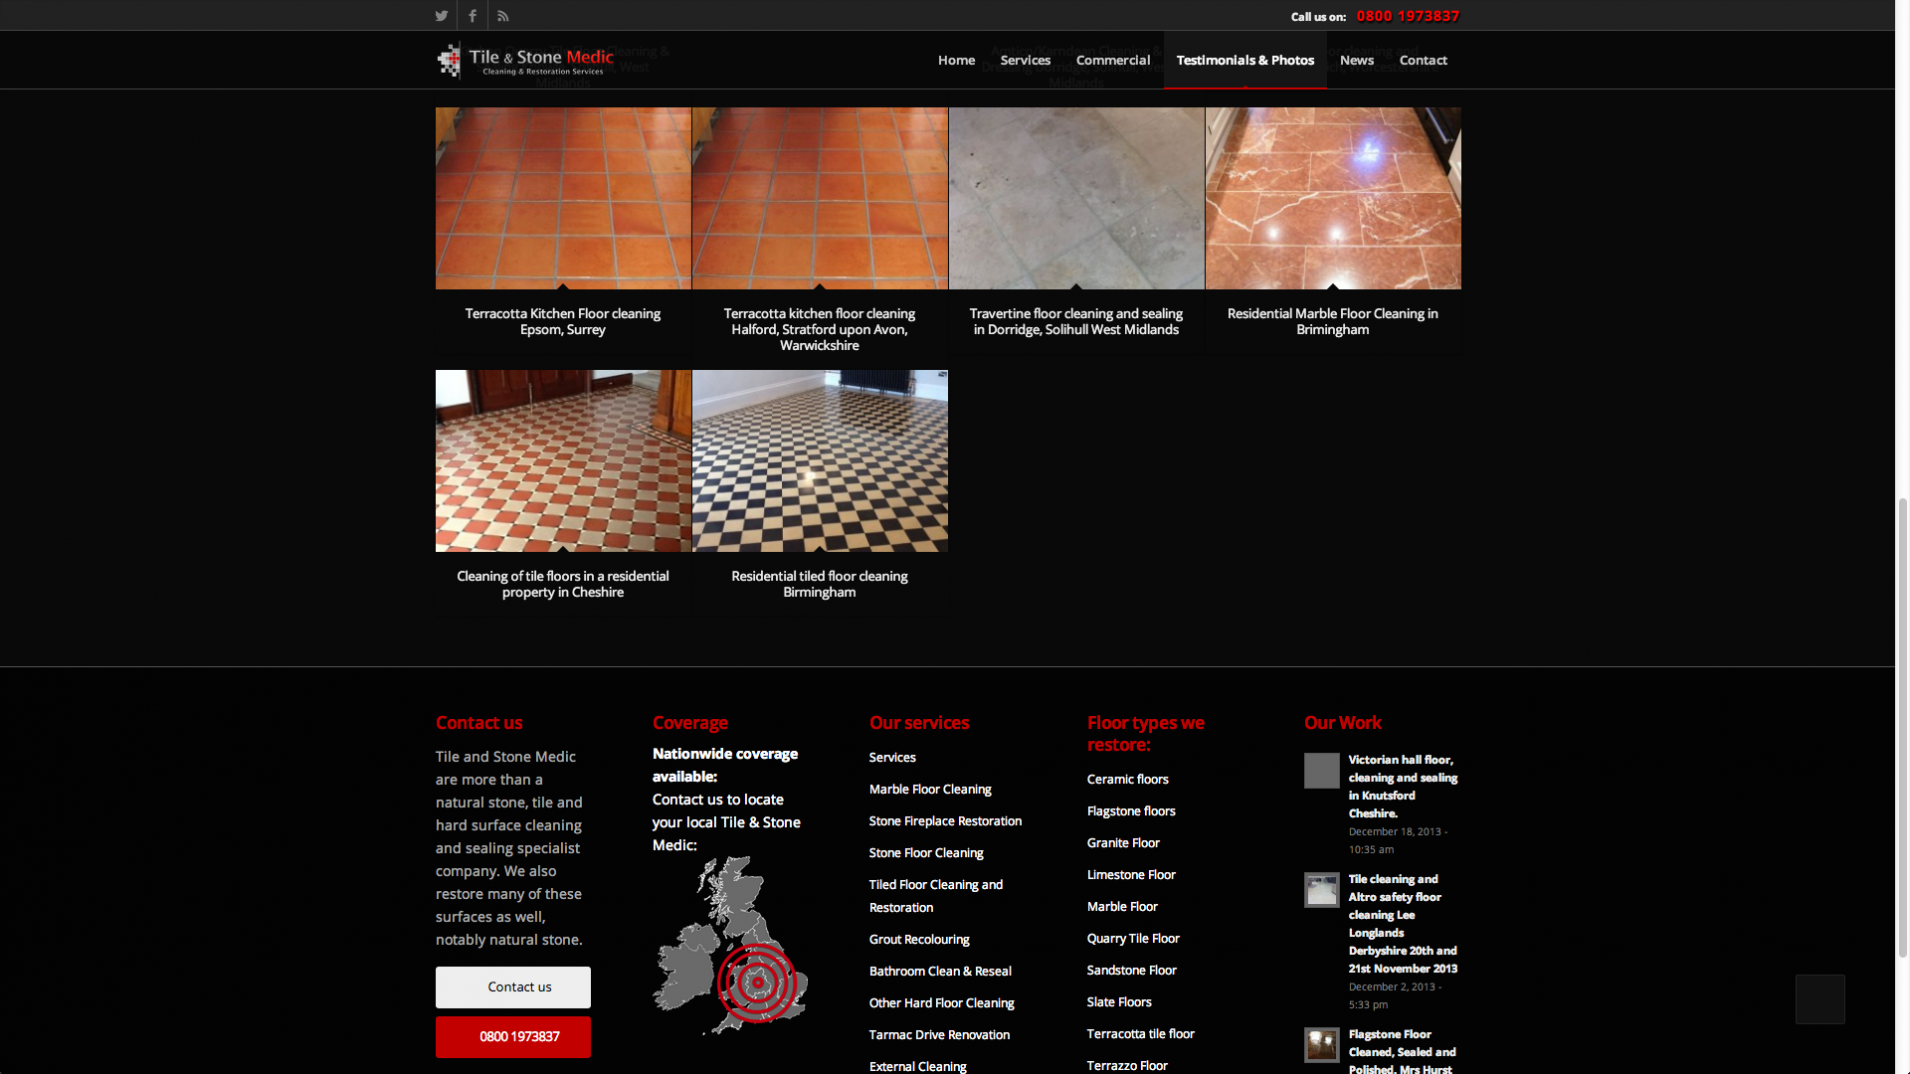 Screen Shot 2013 12 23 at 16.37.30 - Website design for nationwide stone floor restoration company